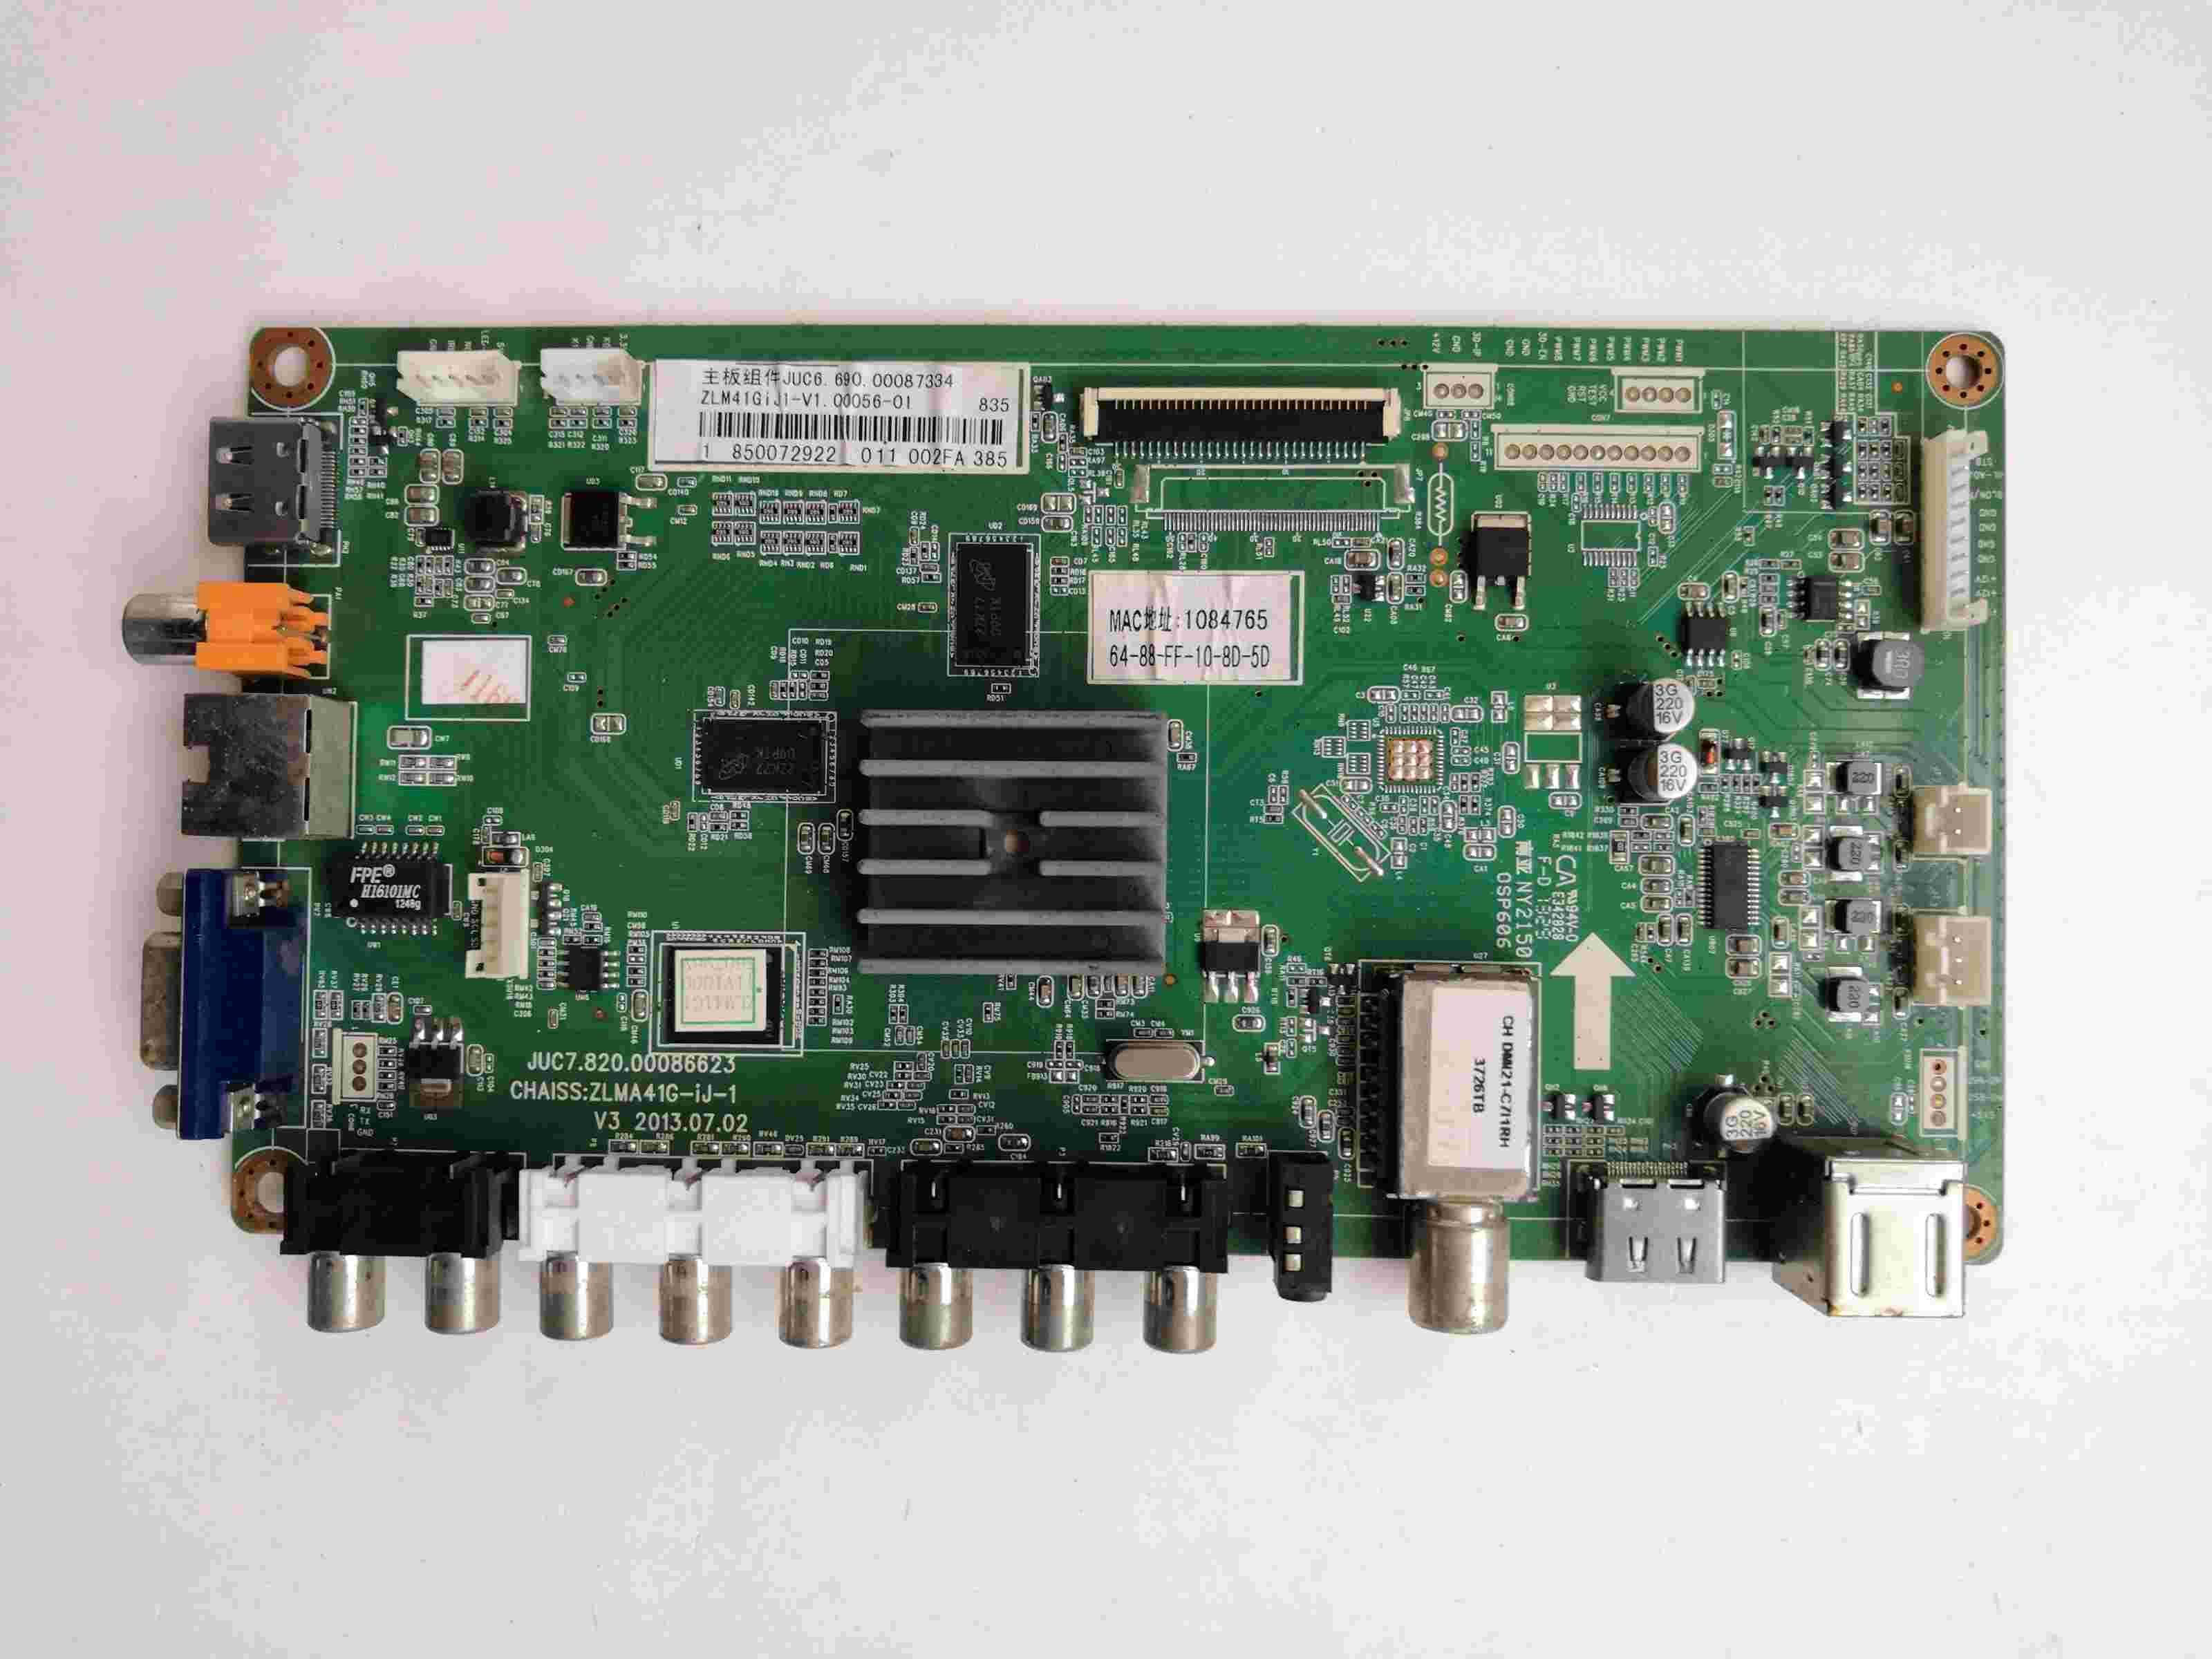 Frugal Main Board Power Board Circuit Logic Board Constant Current Board Led 32c2000 Motherboard Juc7.820.00086623 Screen C320x13-e2-a At Any Cost Consumer Electronics Accessories & Parts